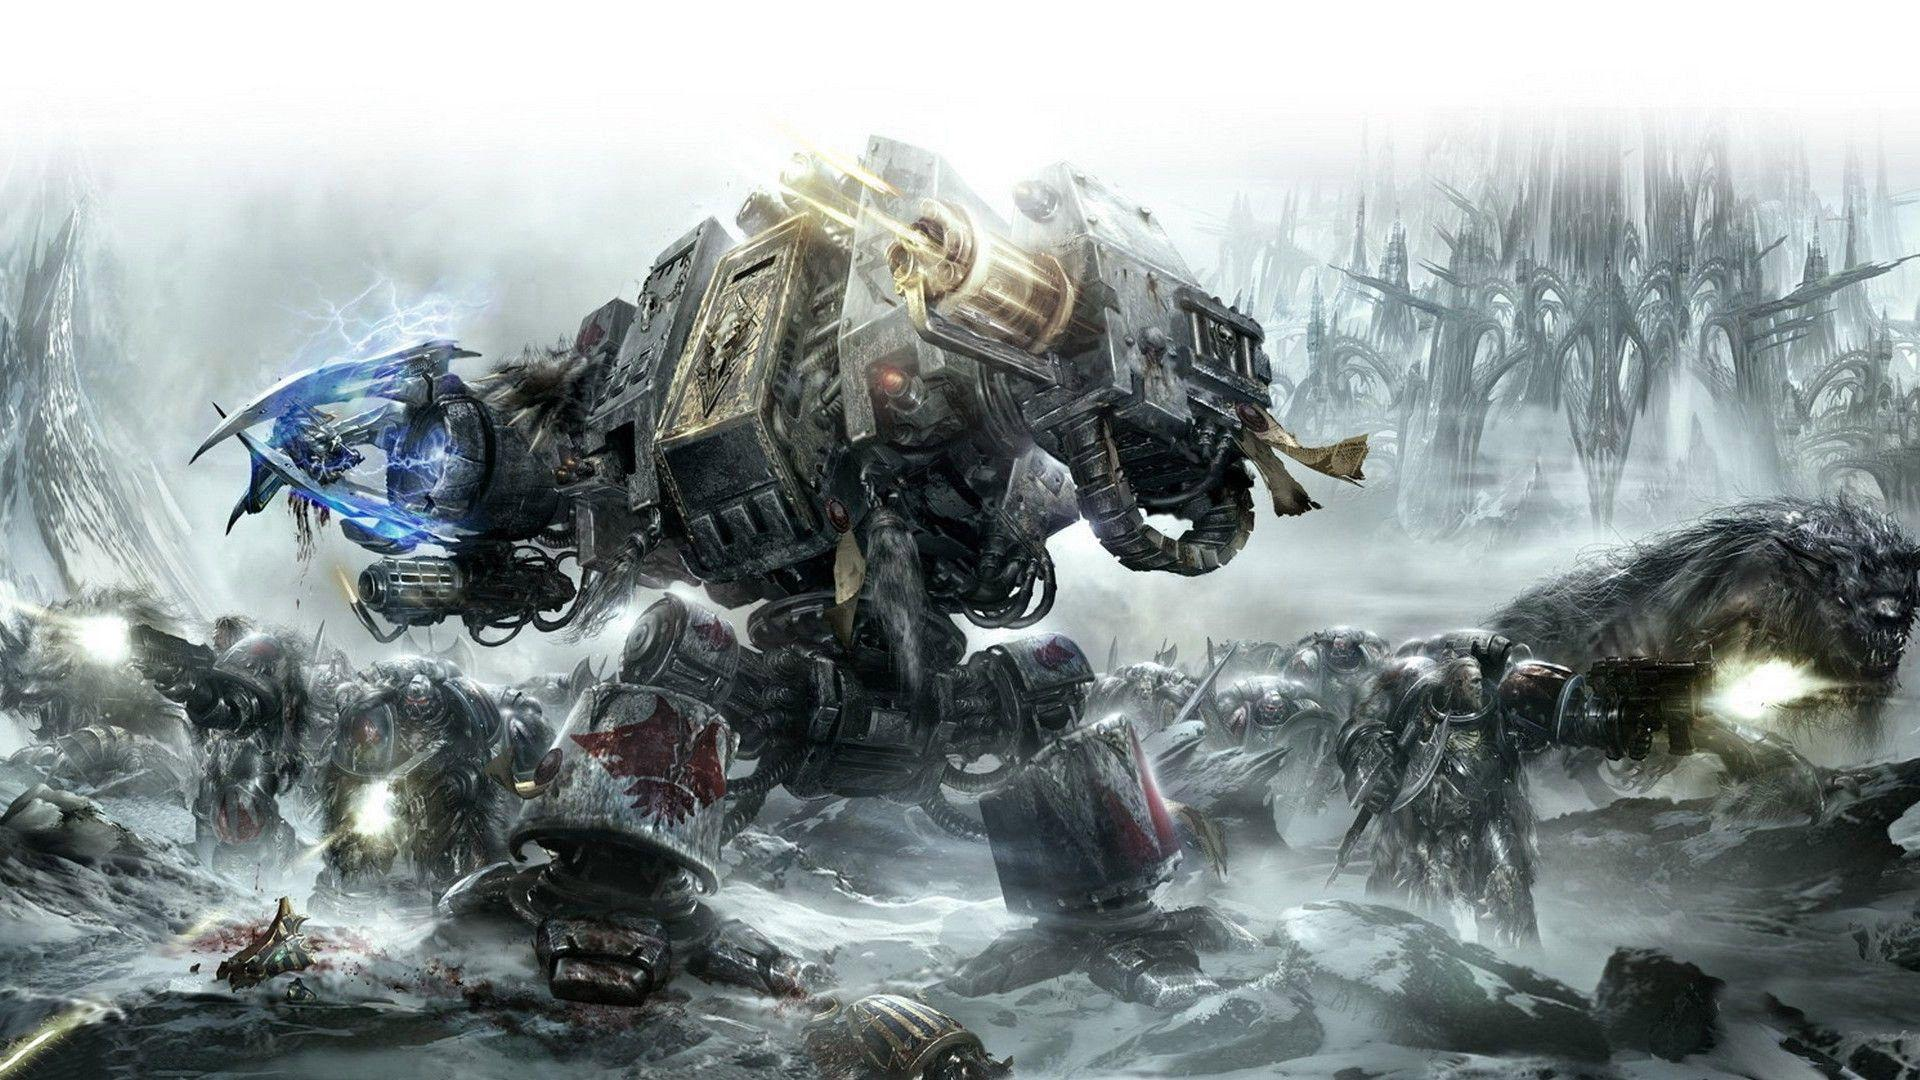 warhammer 40k wallpaper 1680x1050 - photo #1